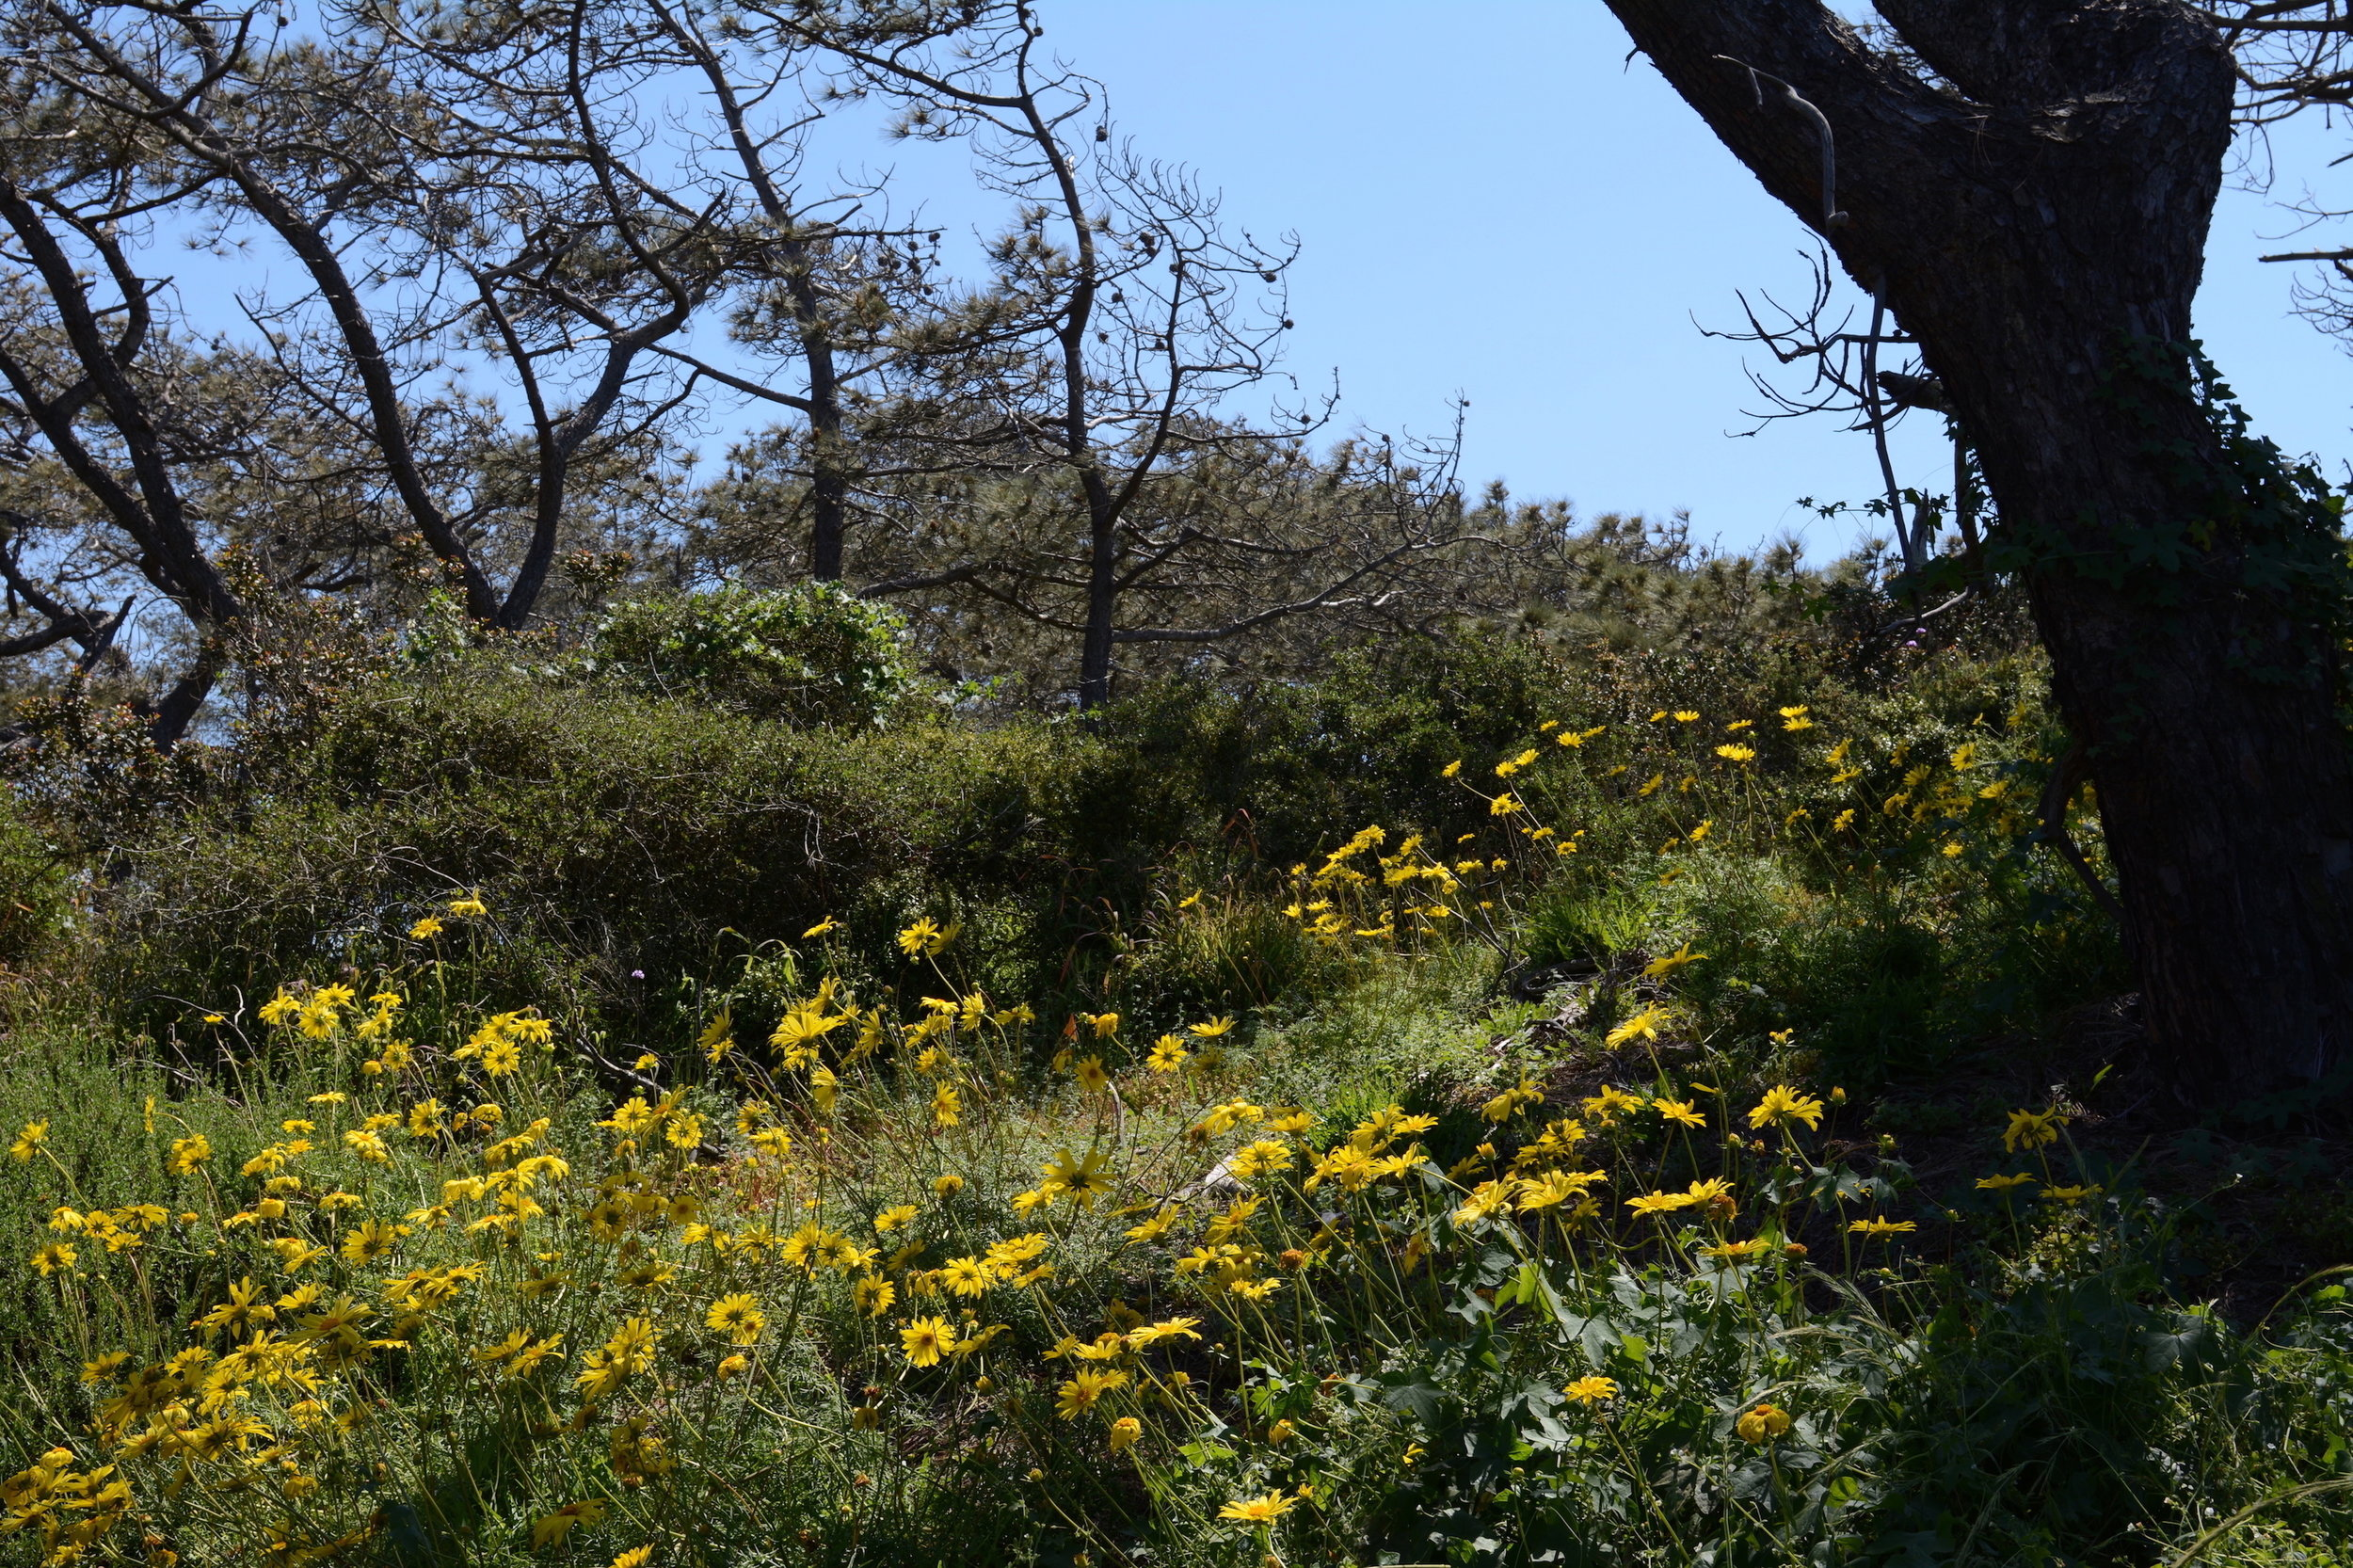 Leptosyne and Pinus torreyana at Torrey Pines